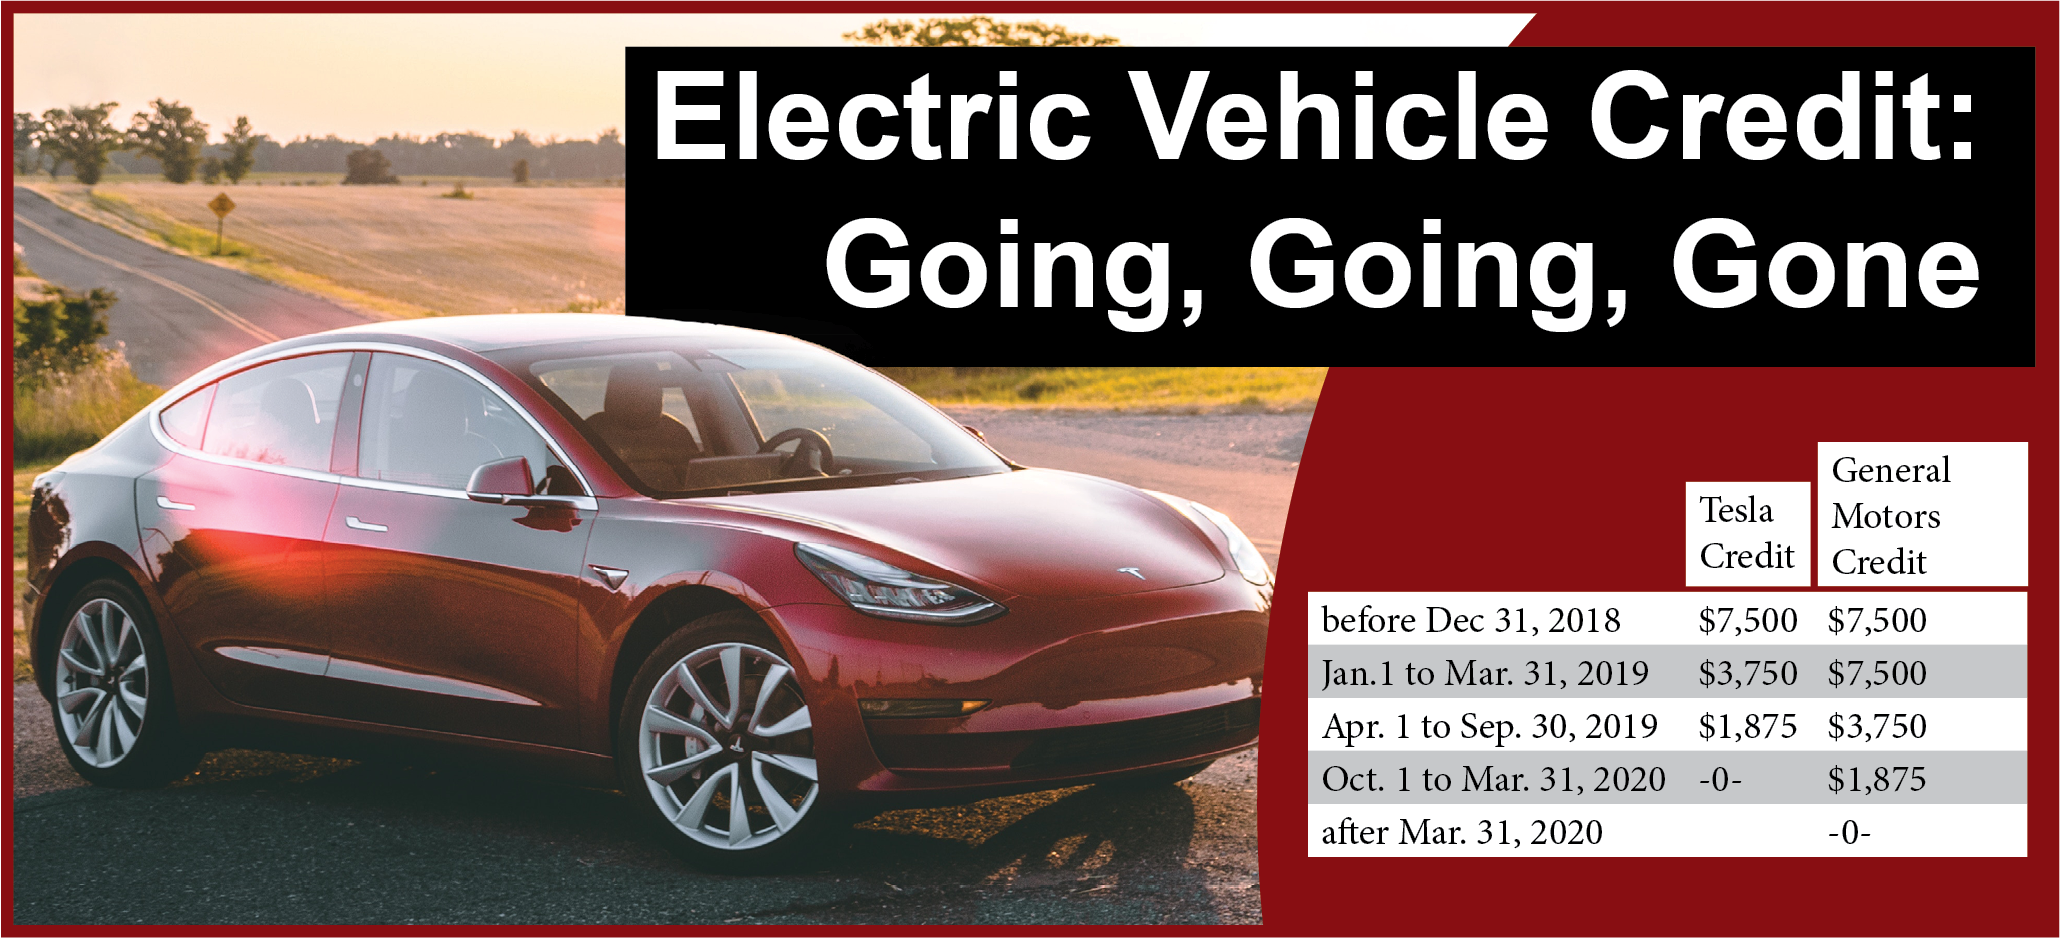 Electric Vehicle Credit Starts To Phase Out For Tesla And General Motors Ir 2019 57 June 13 2019 Western Cpe